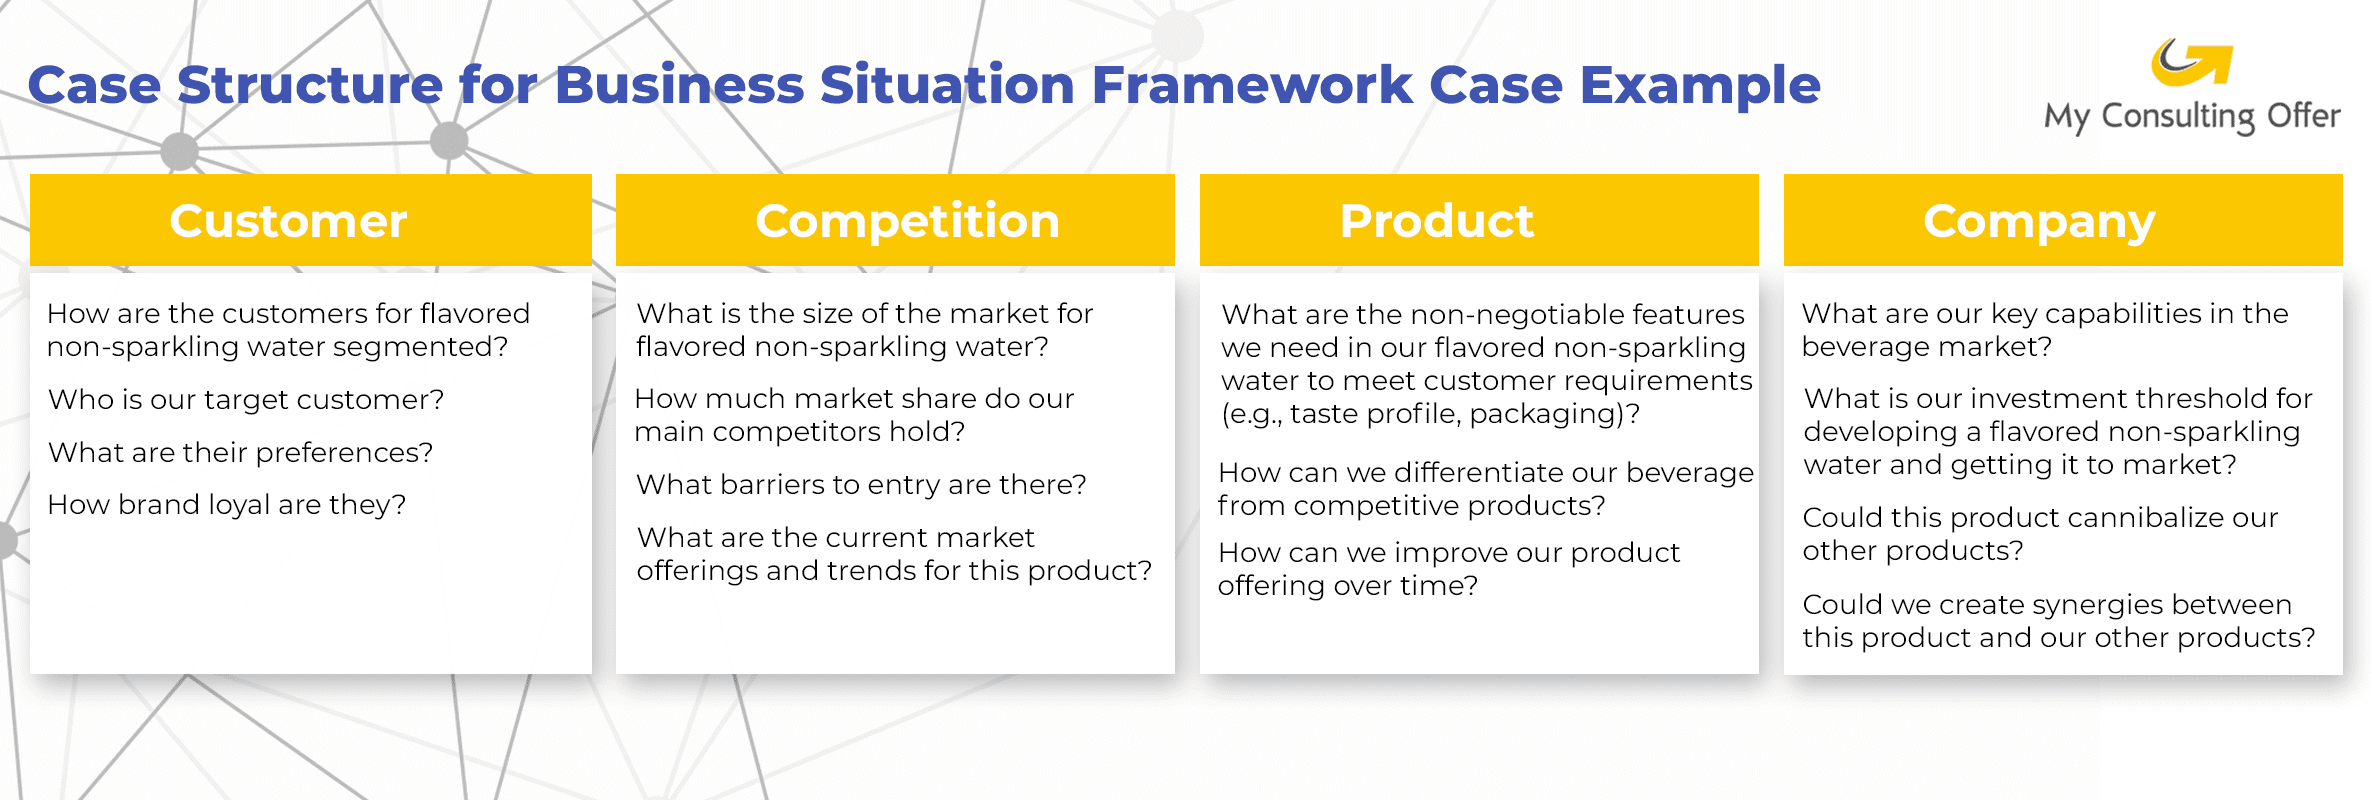 Case Structure for Business Situation Framework Case Example